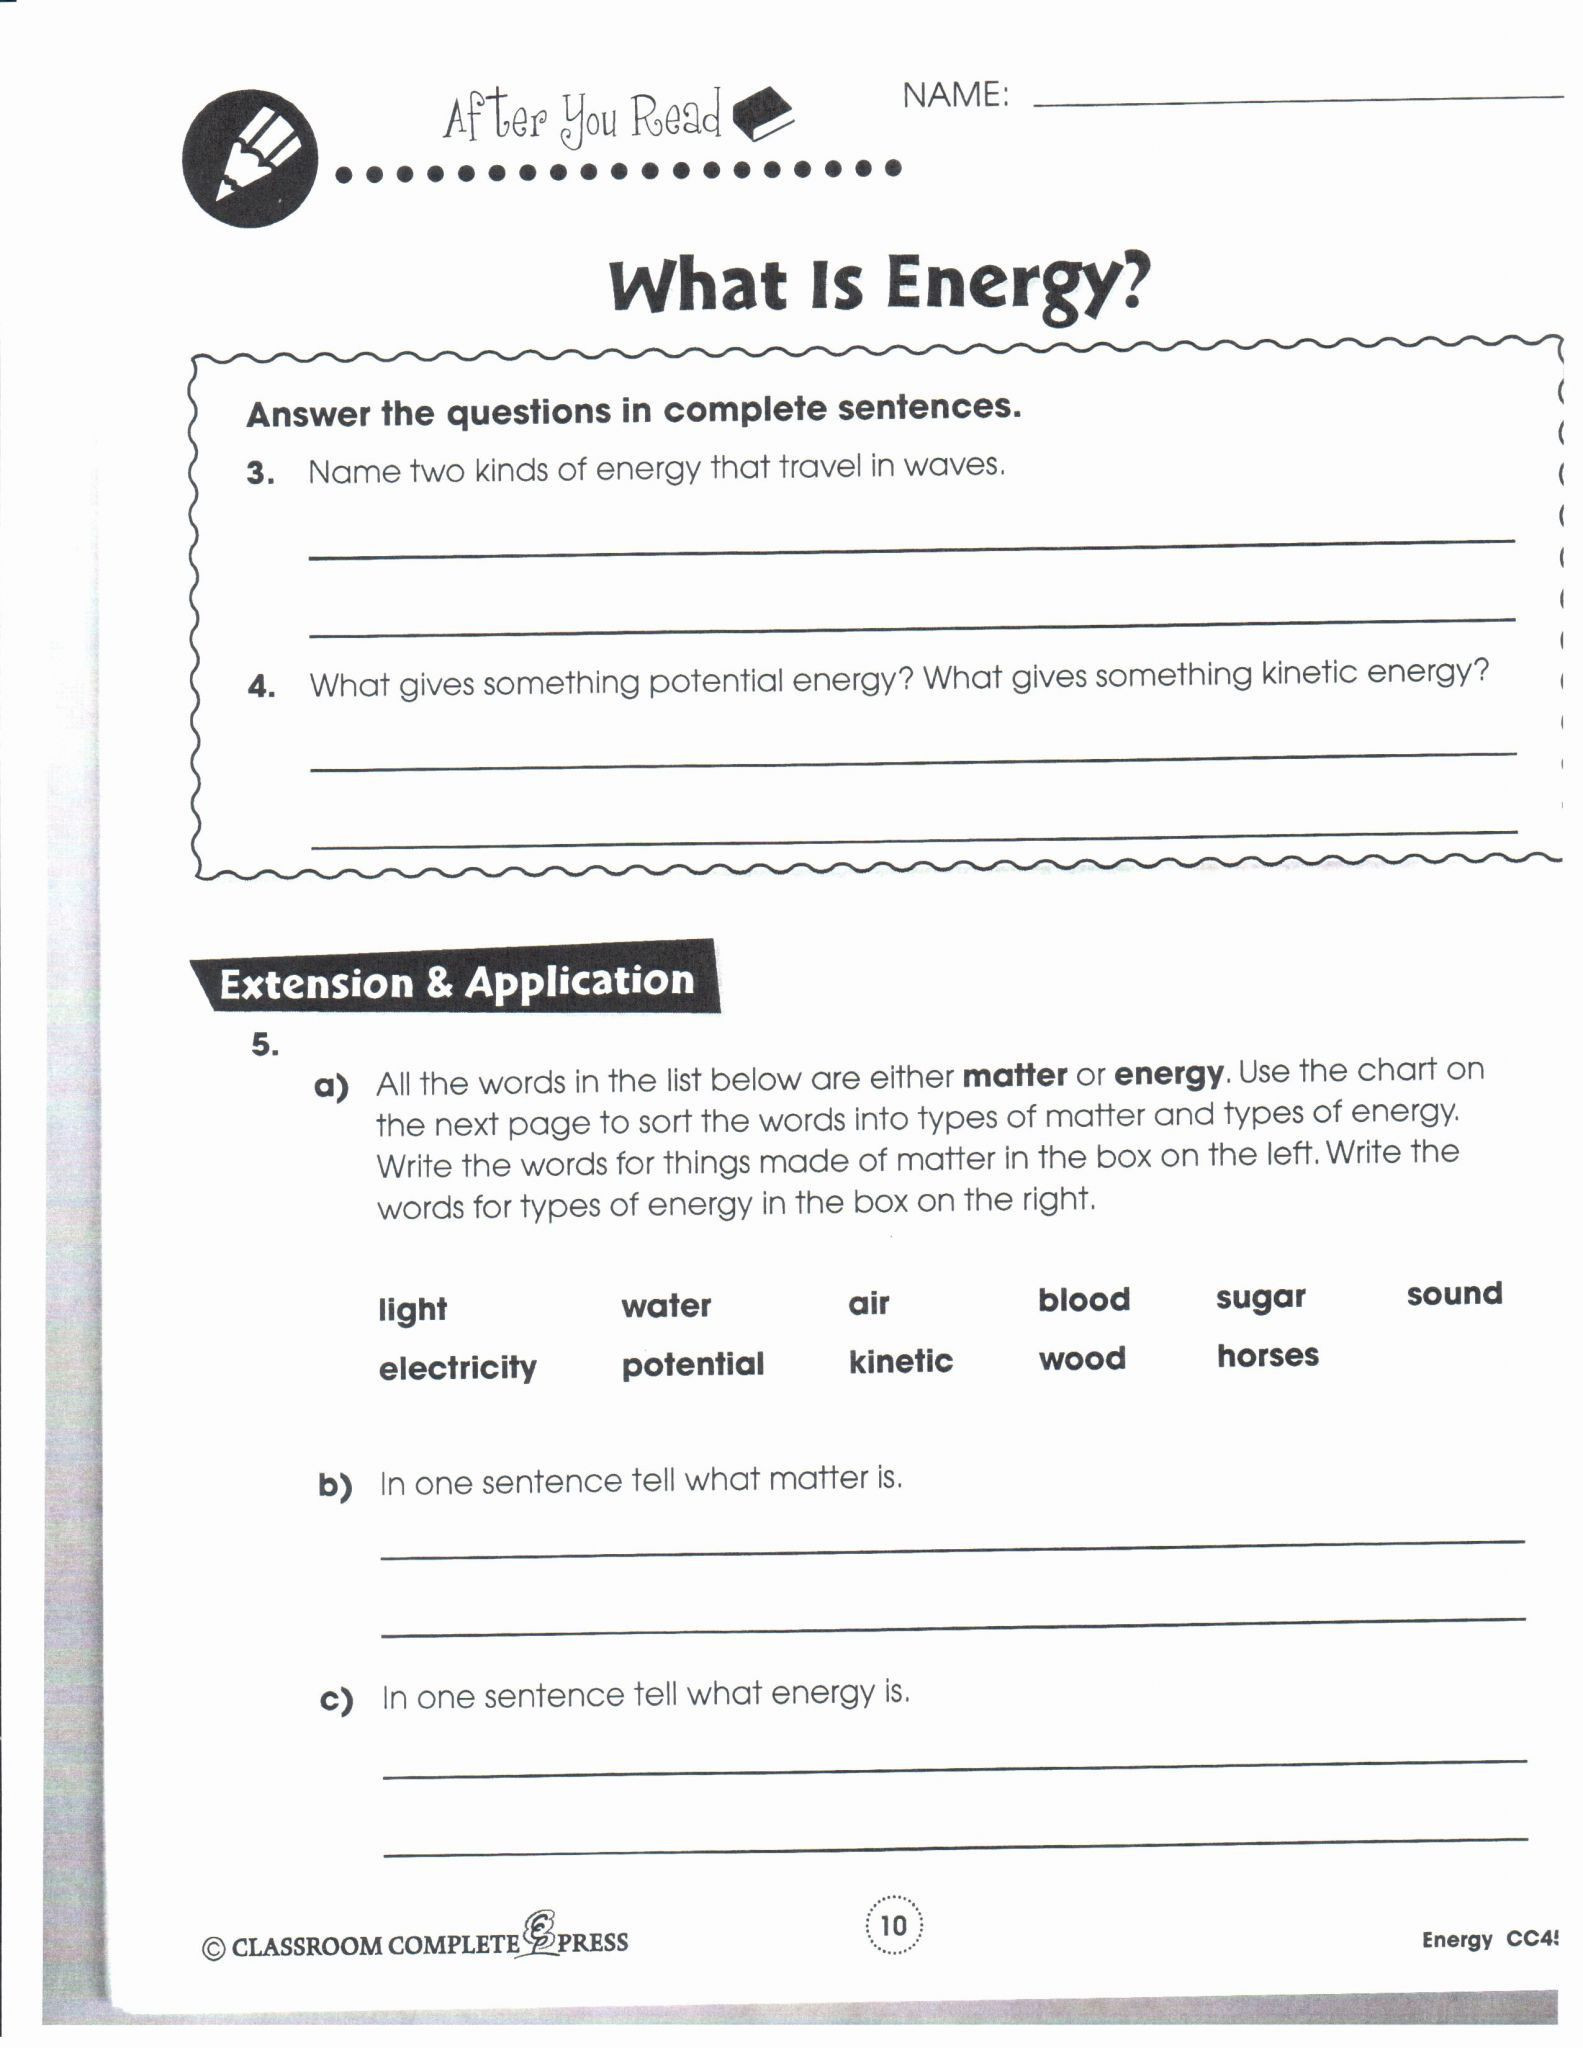 Energy Transformation Worksheet Middle School Energy Conversion Worksheet 6th Grade